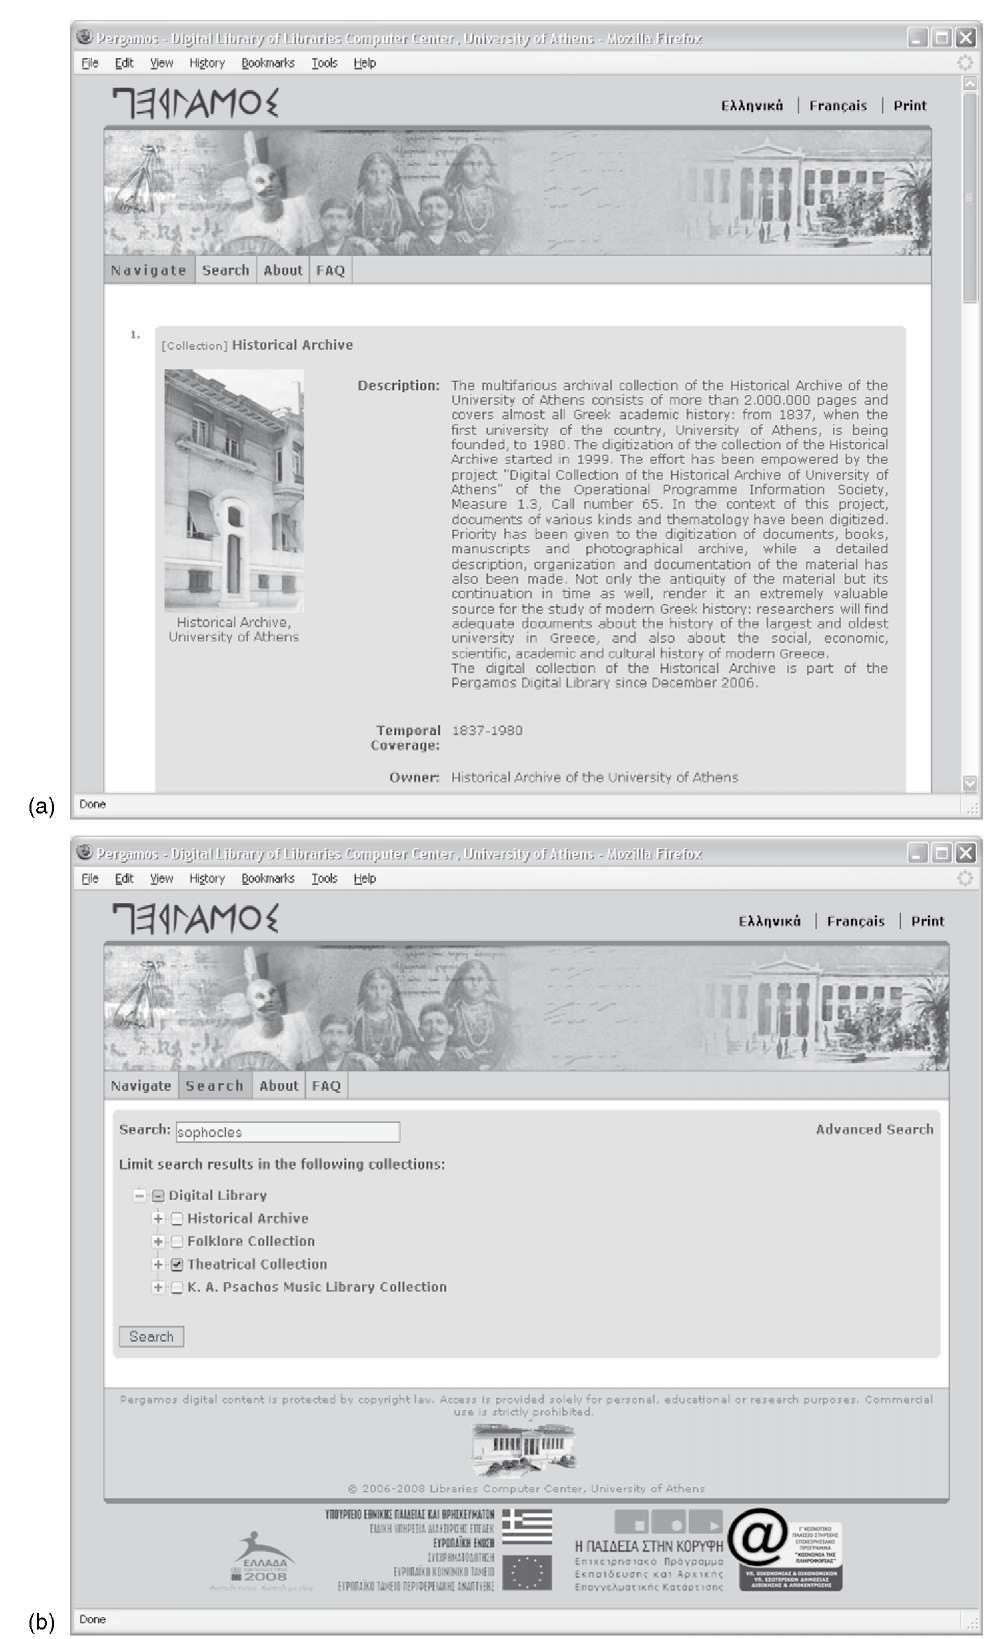 The pergamos Digital Library: (a) home page (in English); (b) searching the theatrical Collection for sophocles;